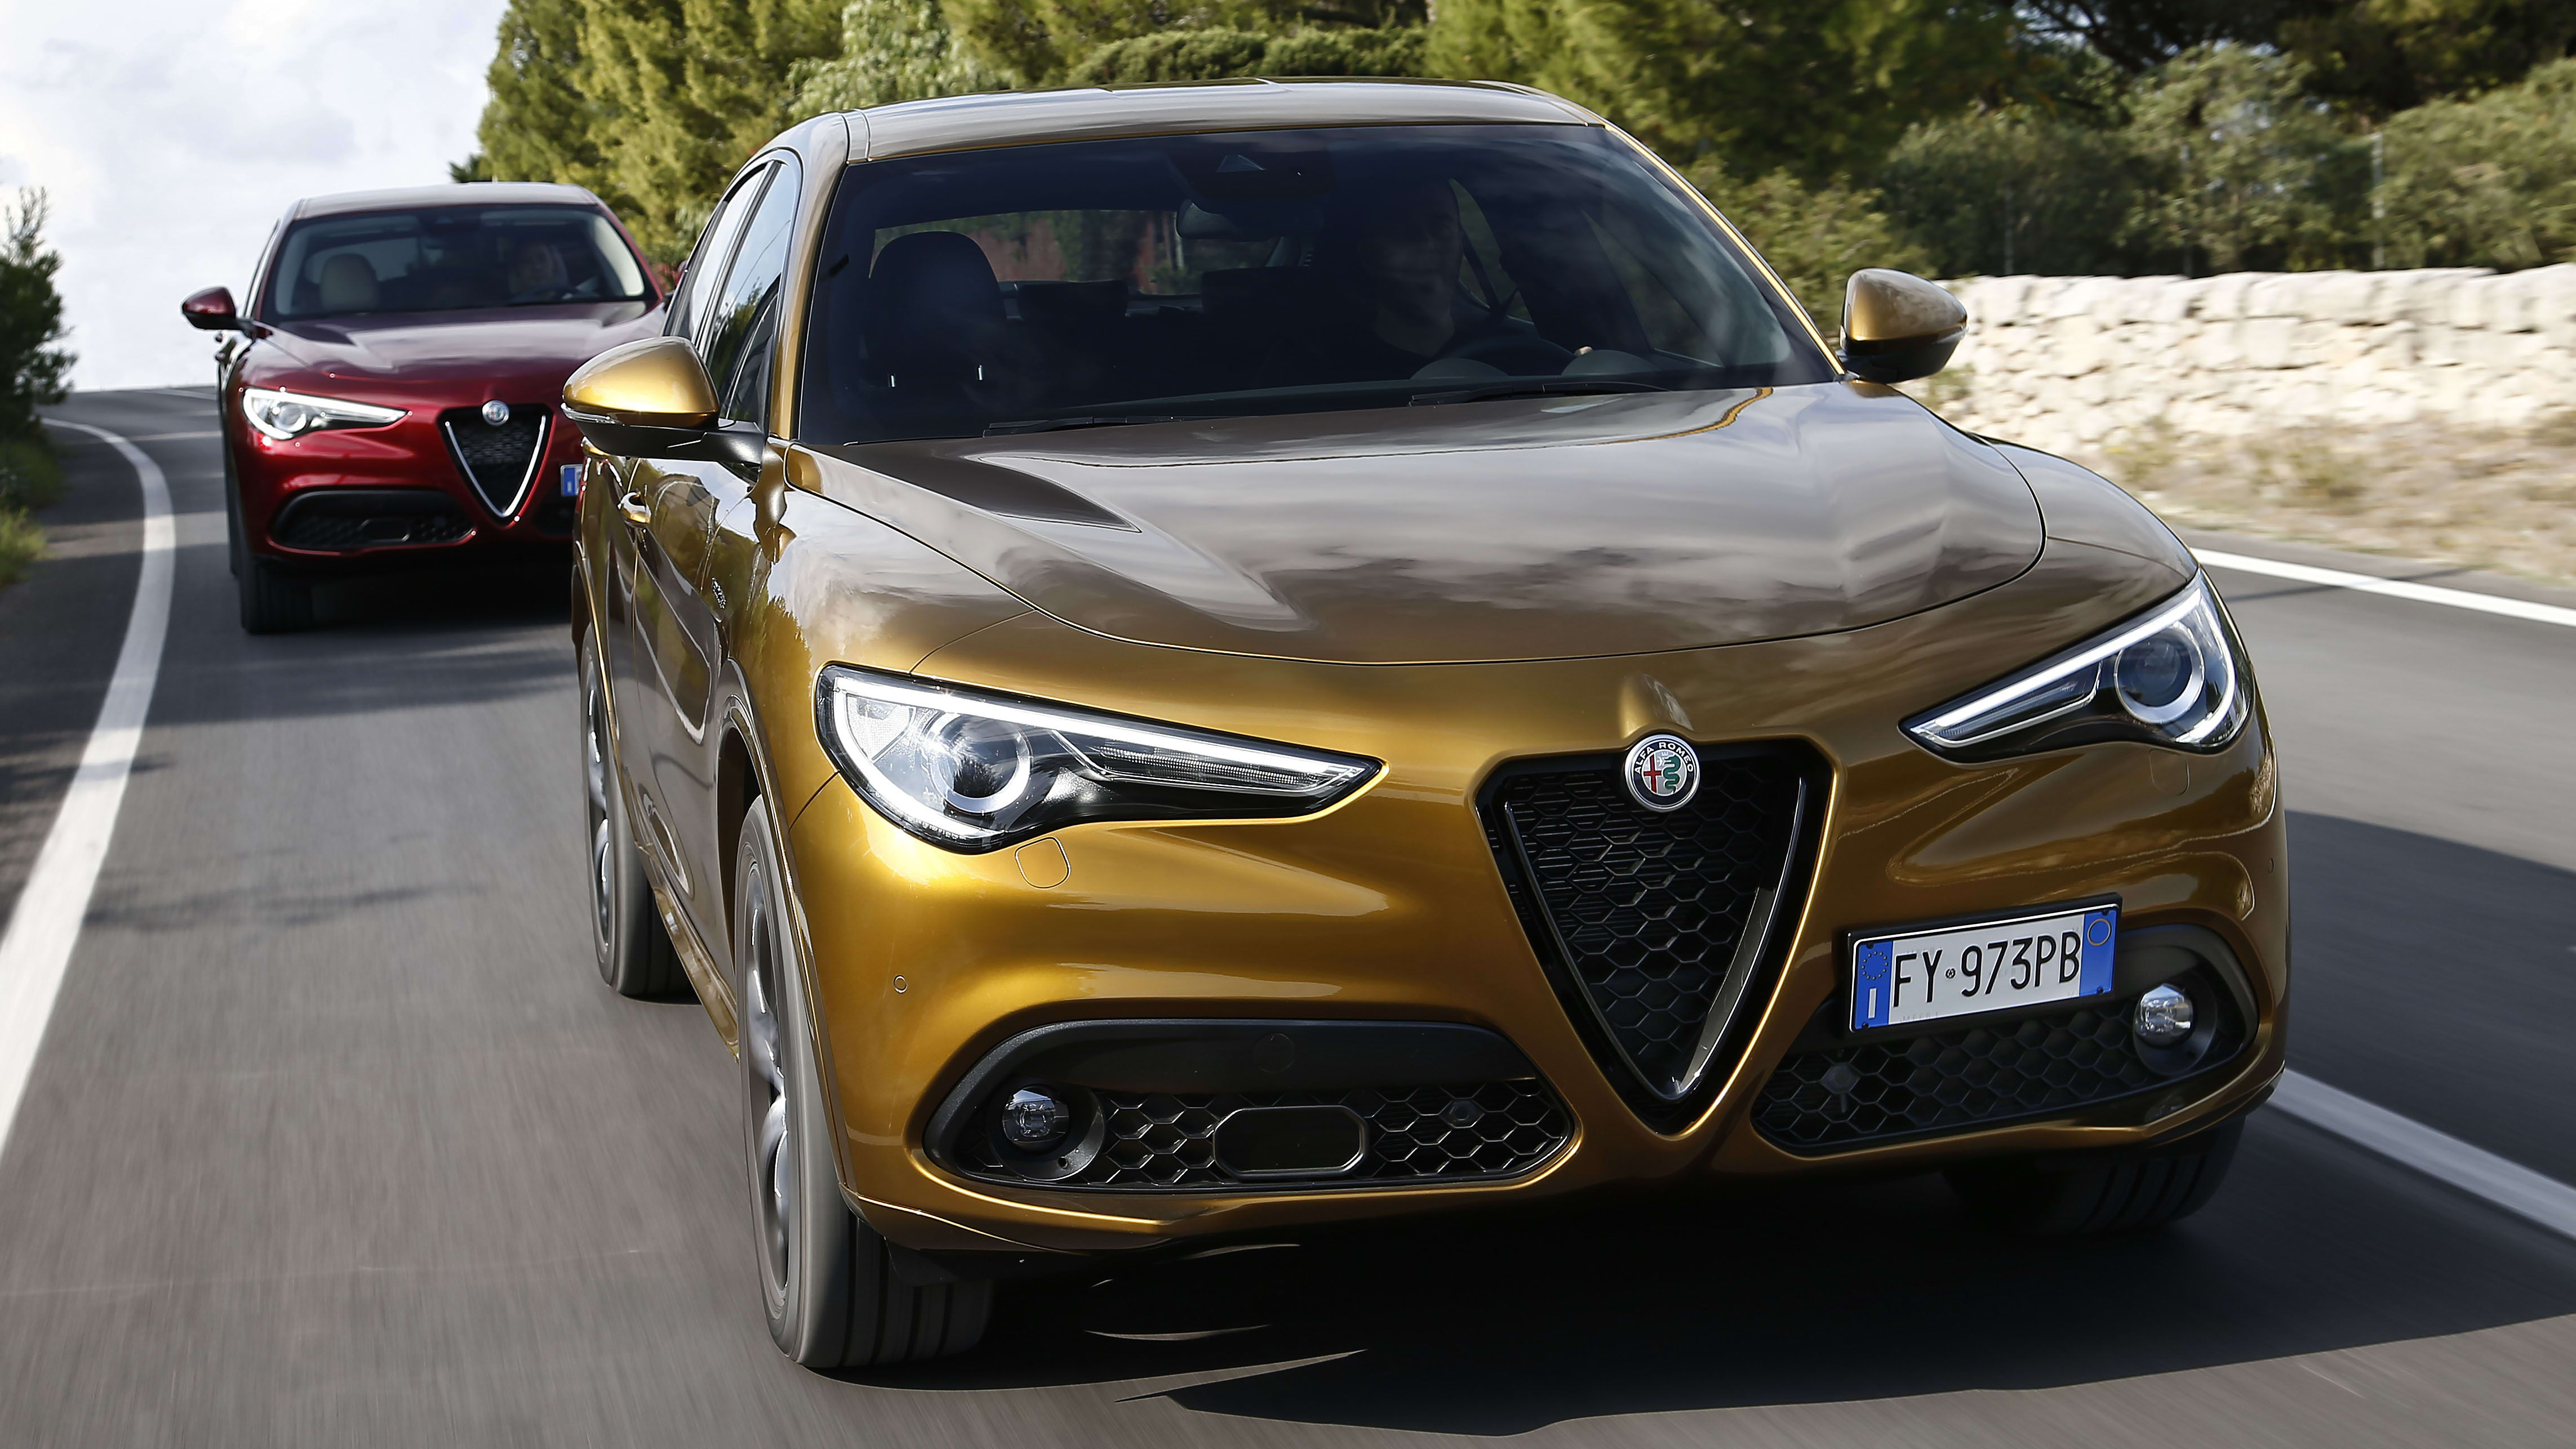 2020 Alfa Romeo Giulia and Stelvio updates revealed